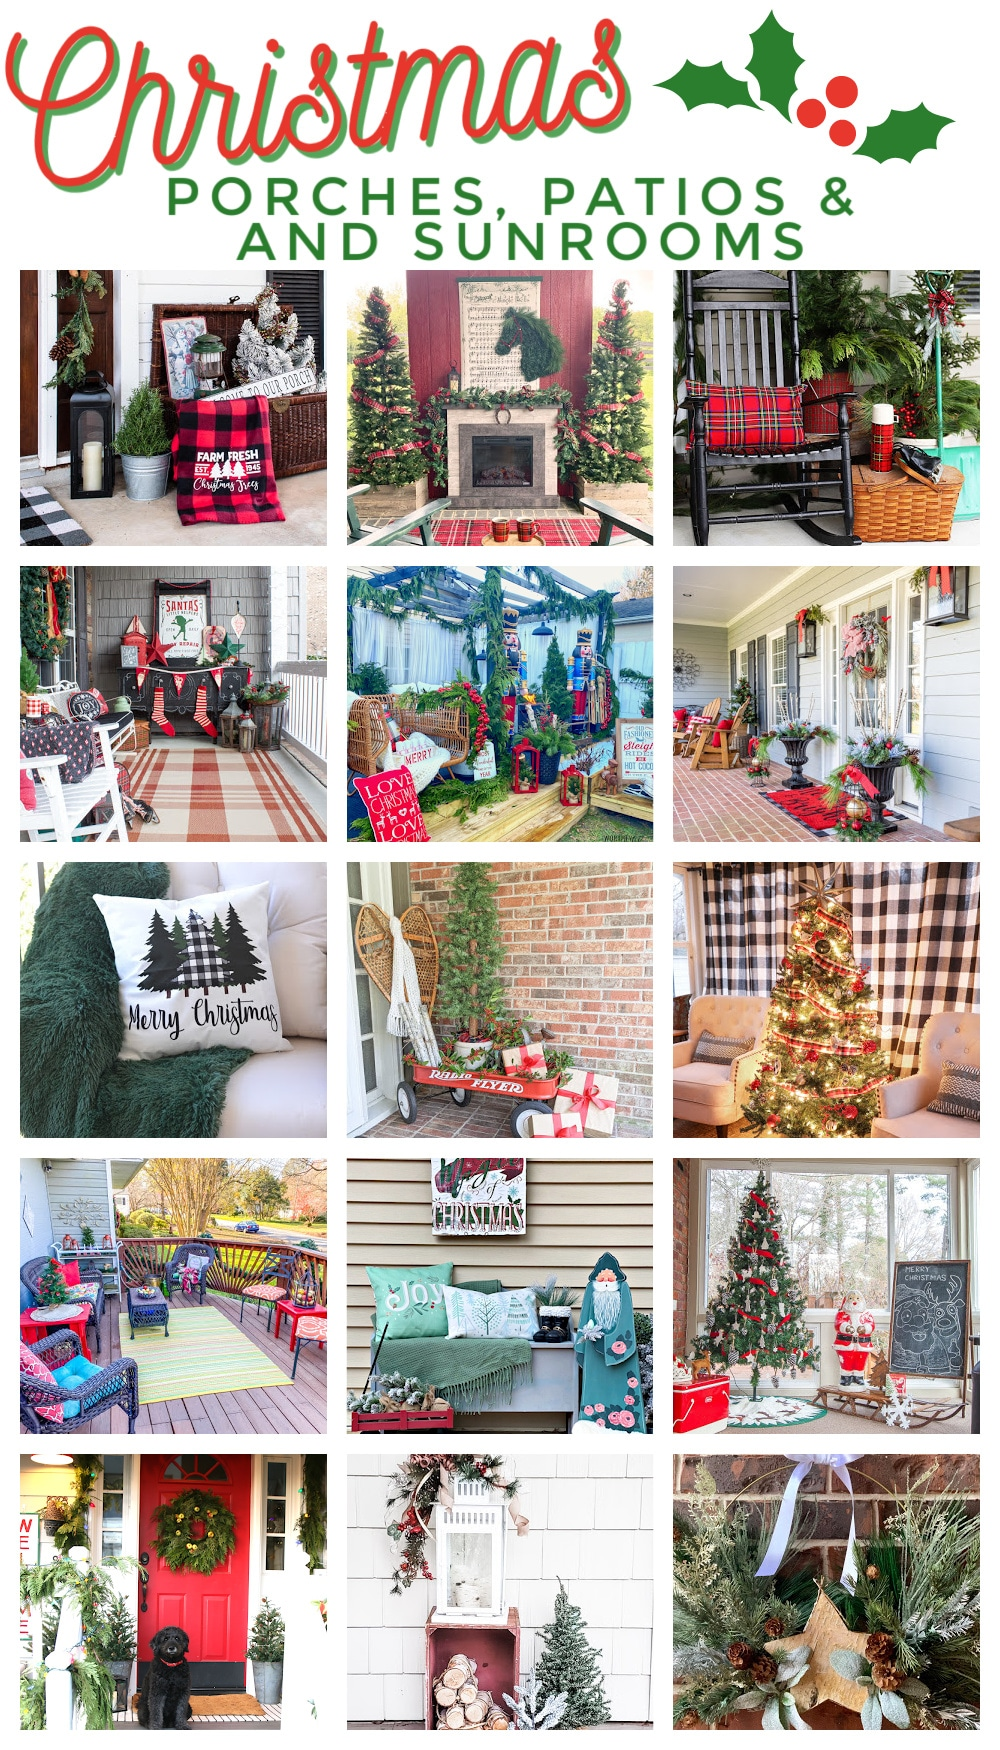 Christmas porches patios and sunrooms!